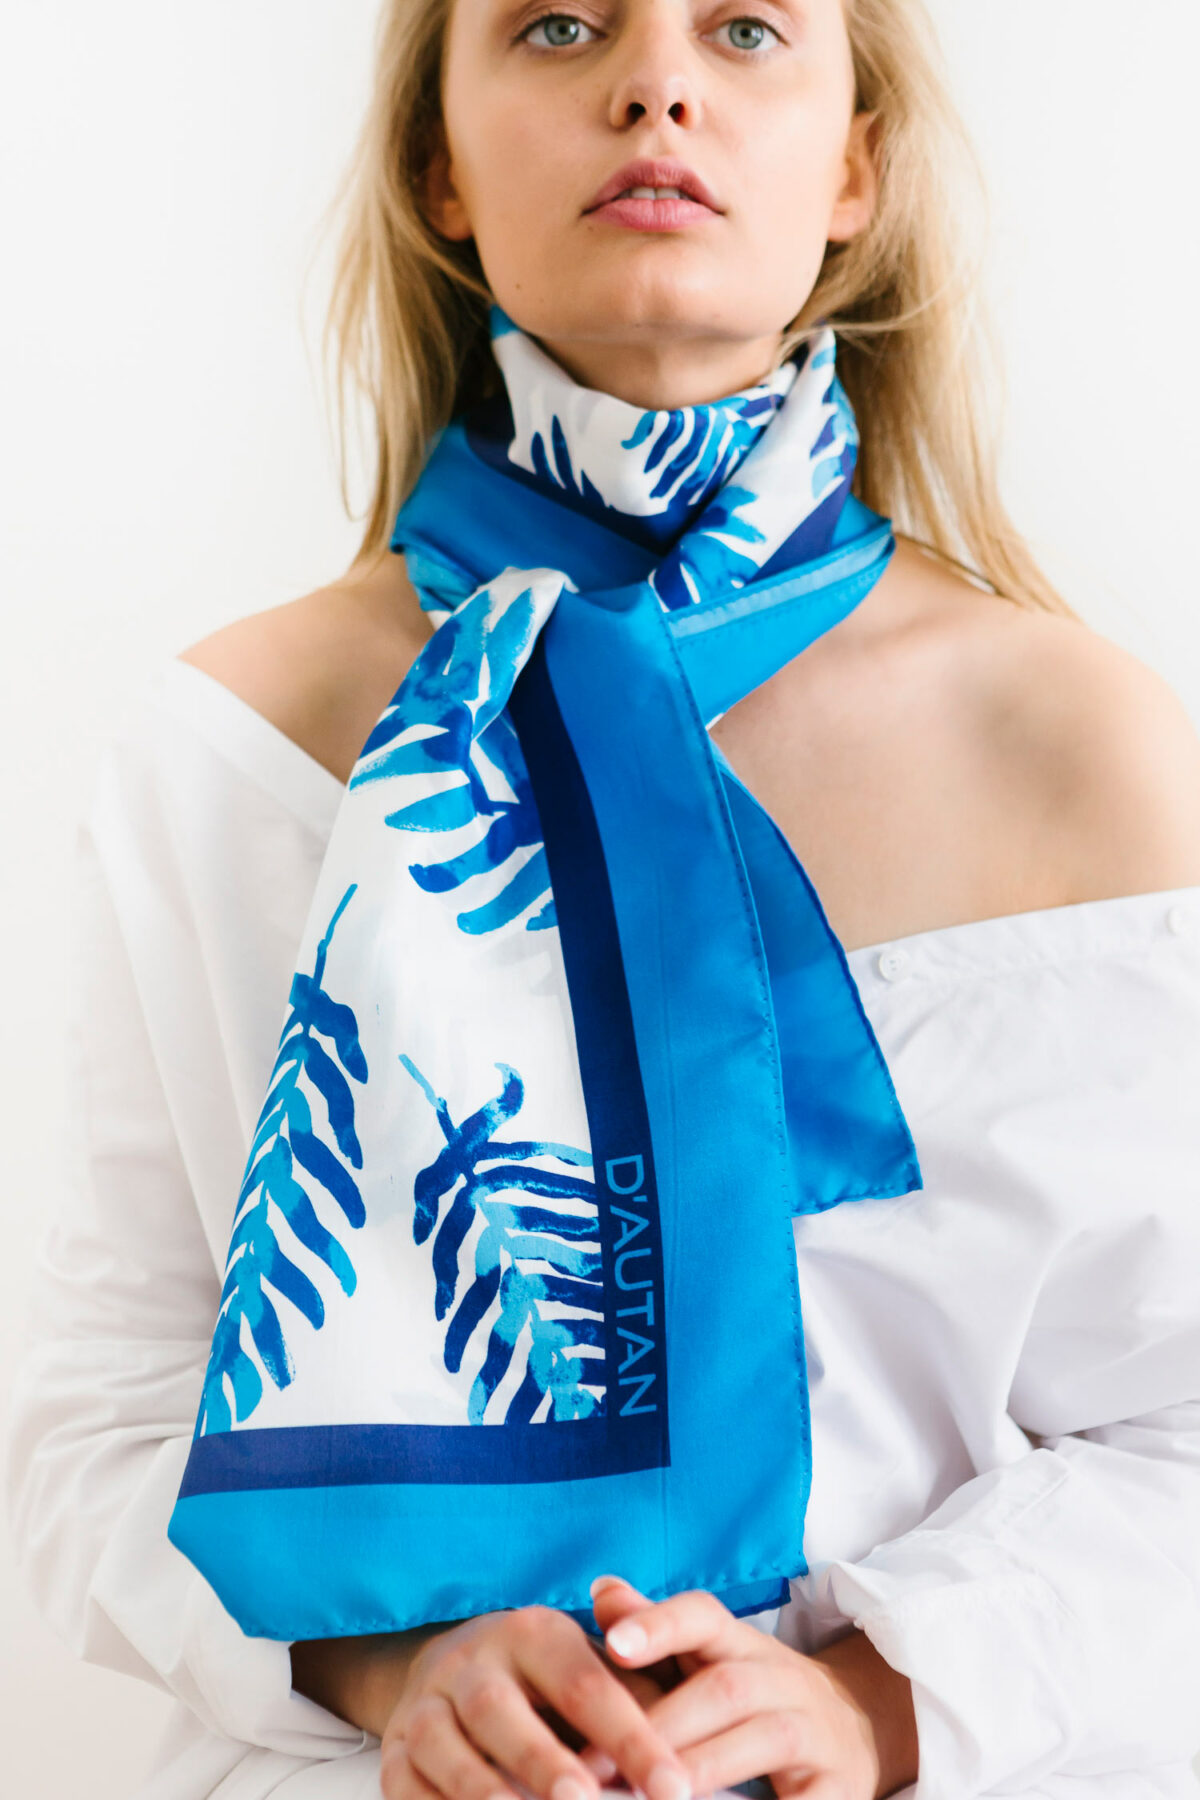 woman wearing a blue and white scarf on her neck